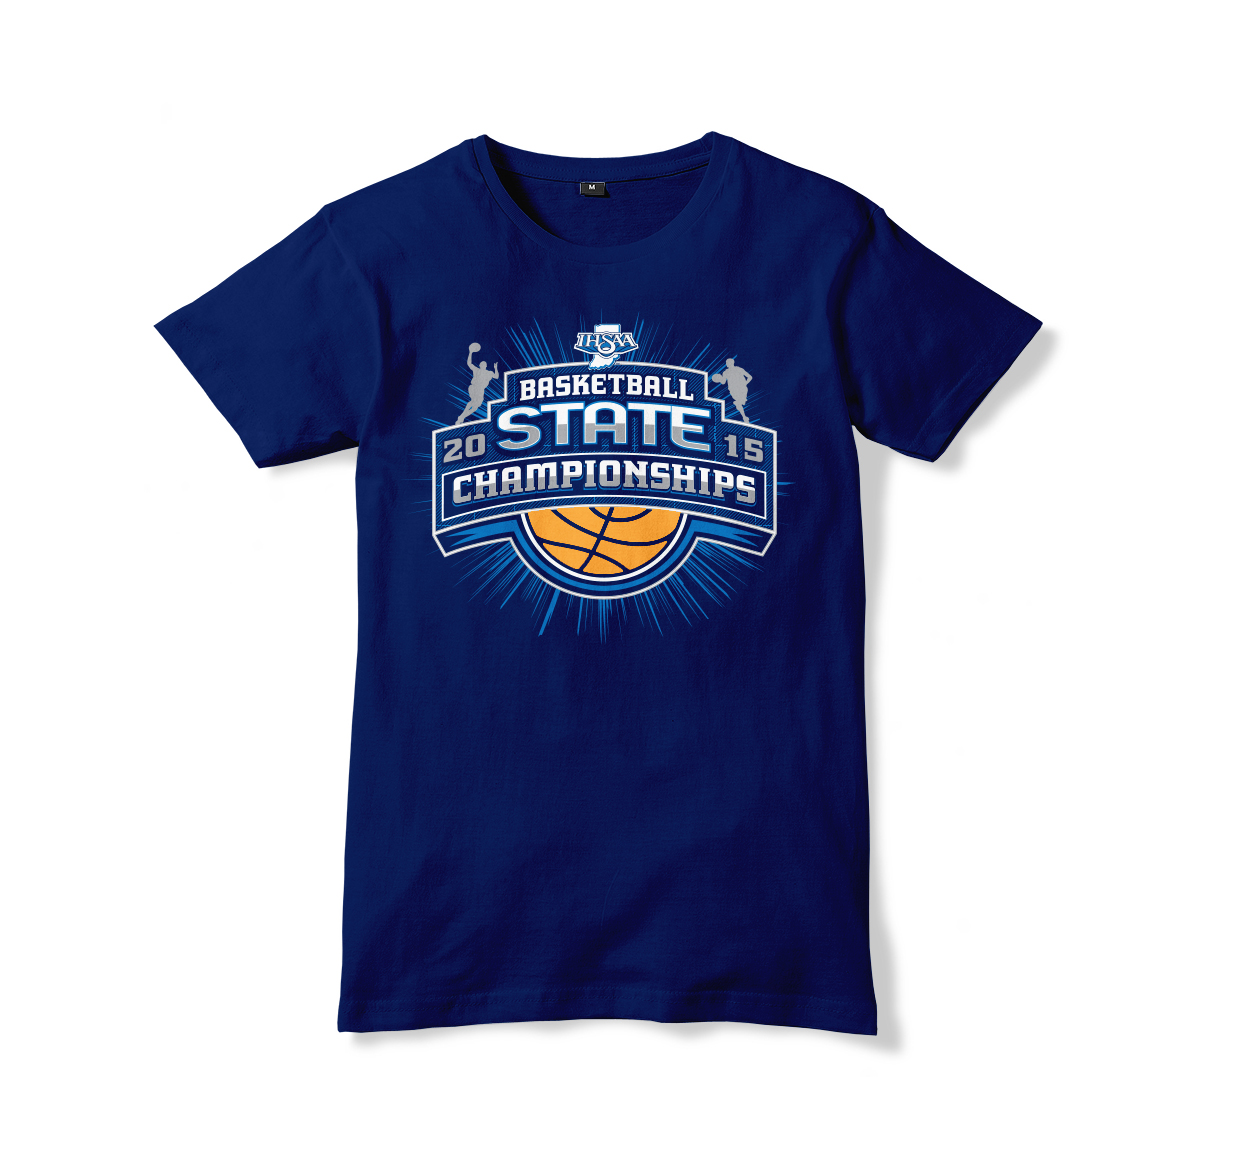 e1fbbea06 Basketball Event Shirt - Accounting Plus of Wayne, Nebraska ...